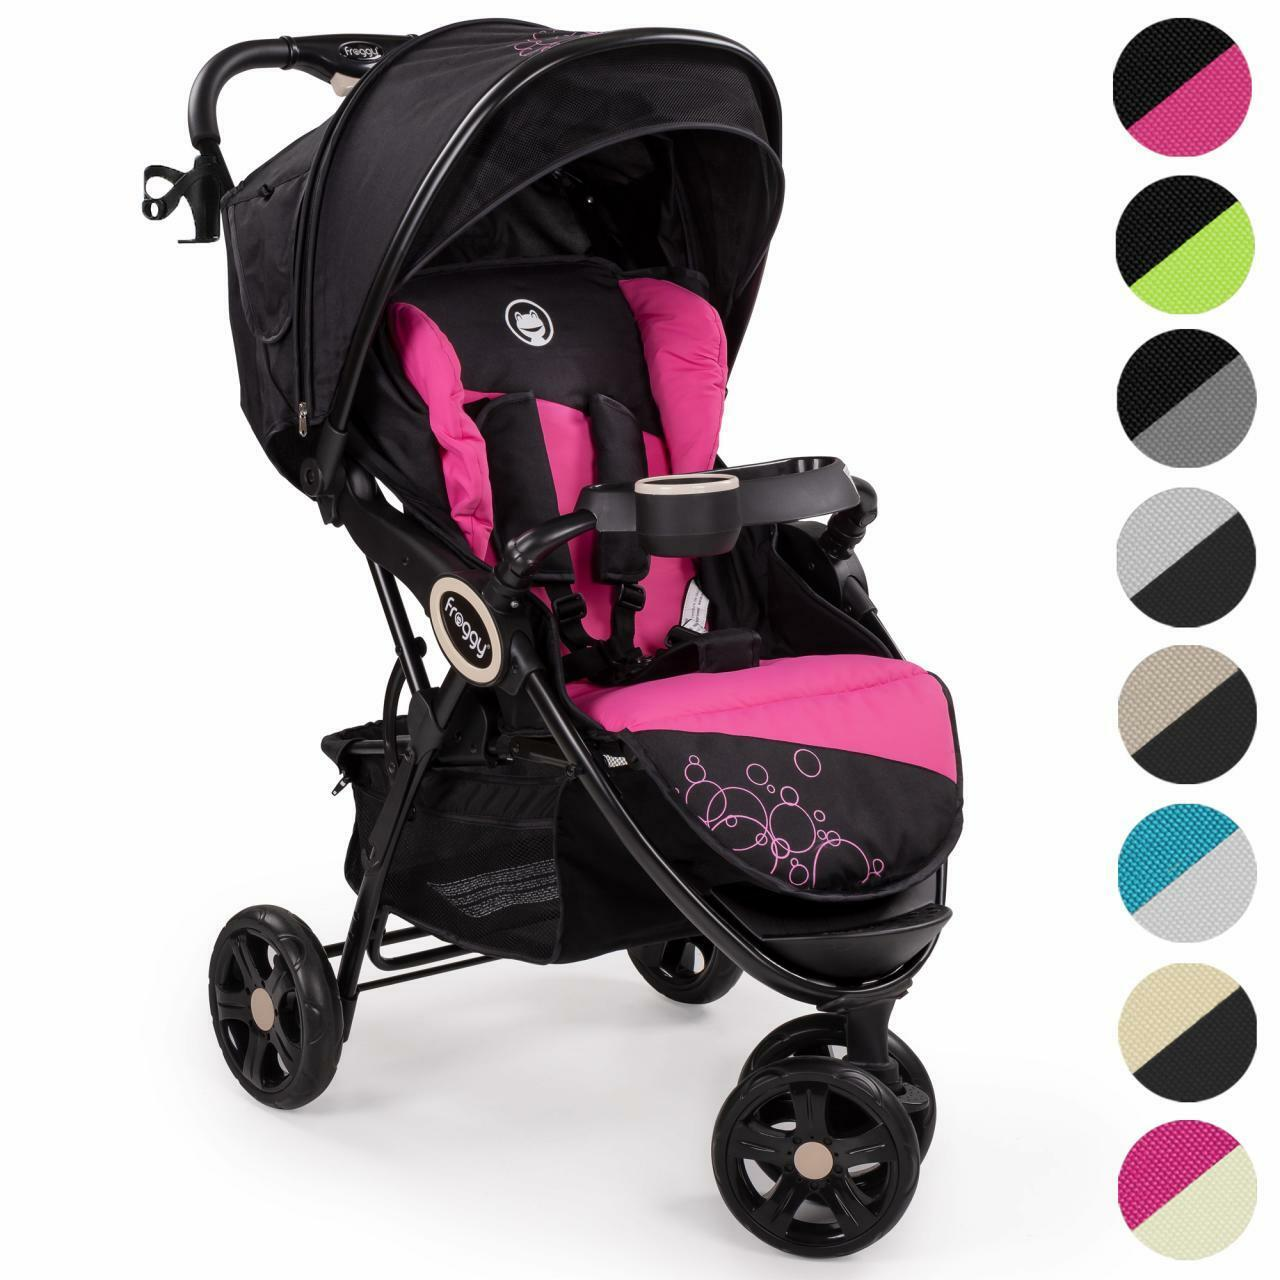 froggy kinderwagen buggy sportwagen baby kinder wagen farbauswahl eur 77 95 picclick de. Black Bedroom Furniture Sets. Home Design Ideas